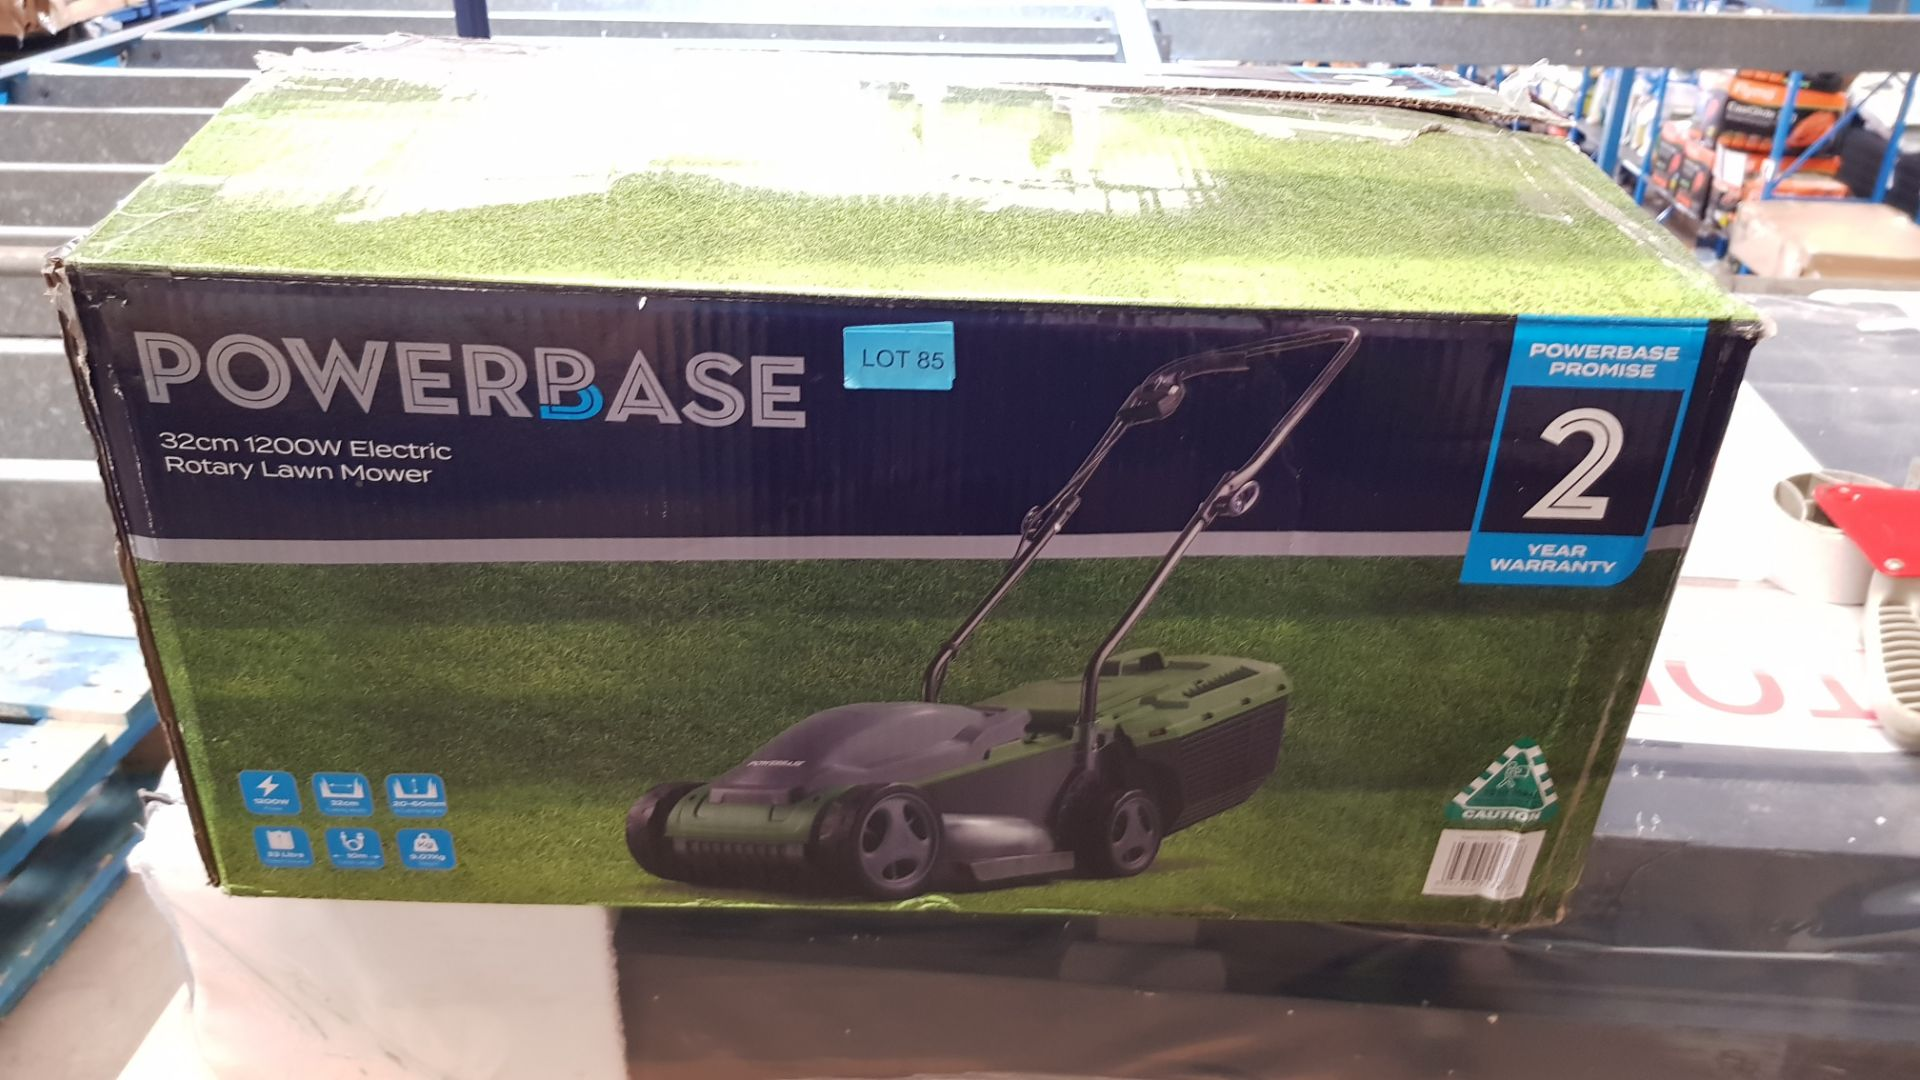 (P3) 1x Powerbase 32cm 1200W Electric Rotary Lawn Mower RRP £59. (Unit Appears Clean, Unused & As - Image 3 of 4